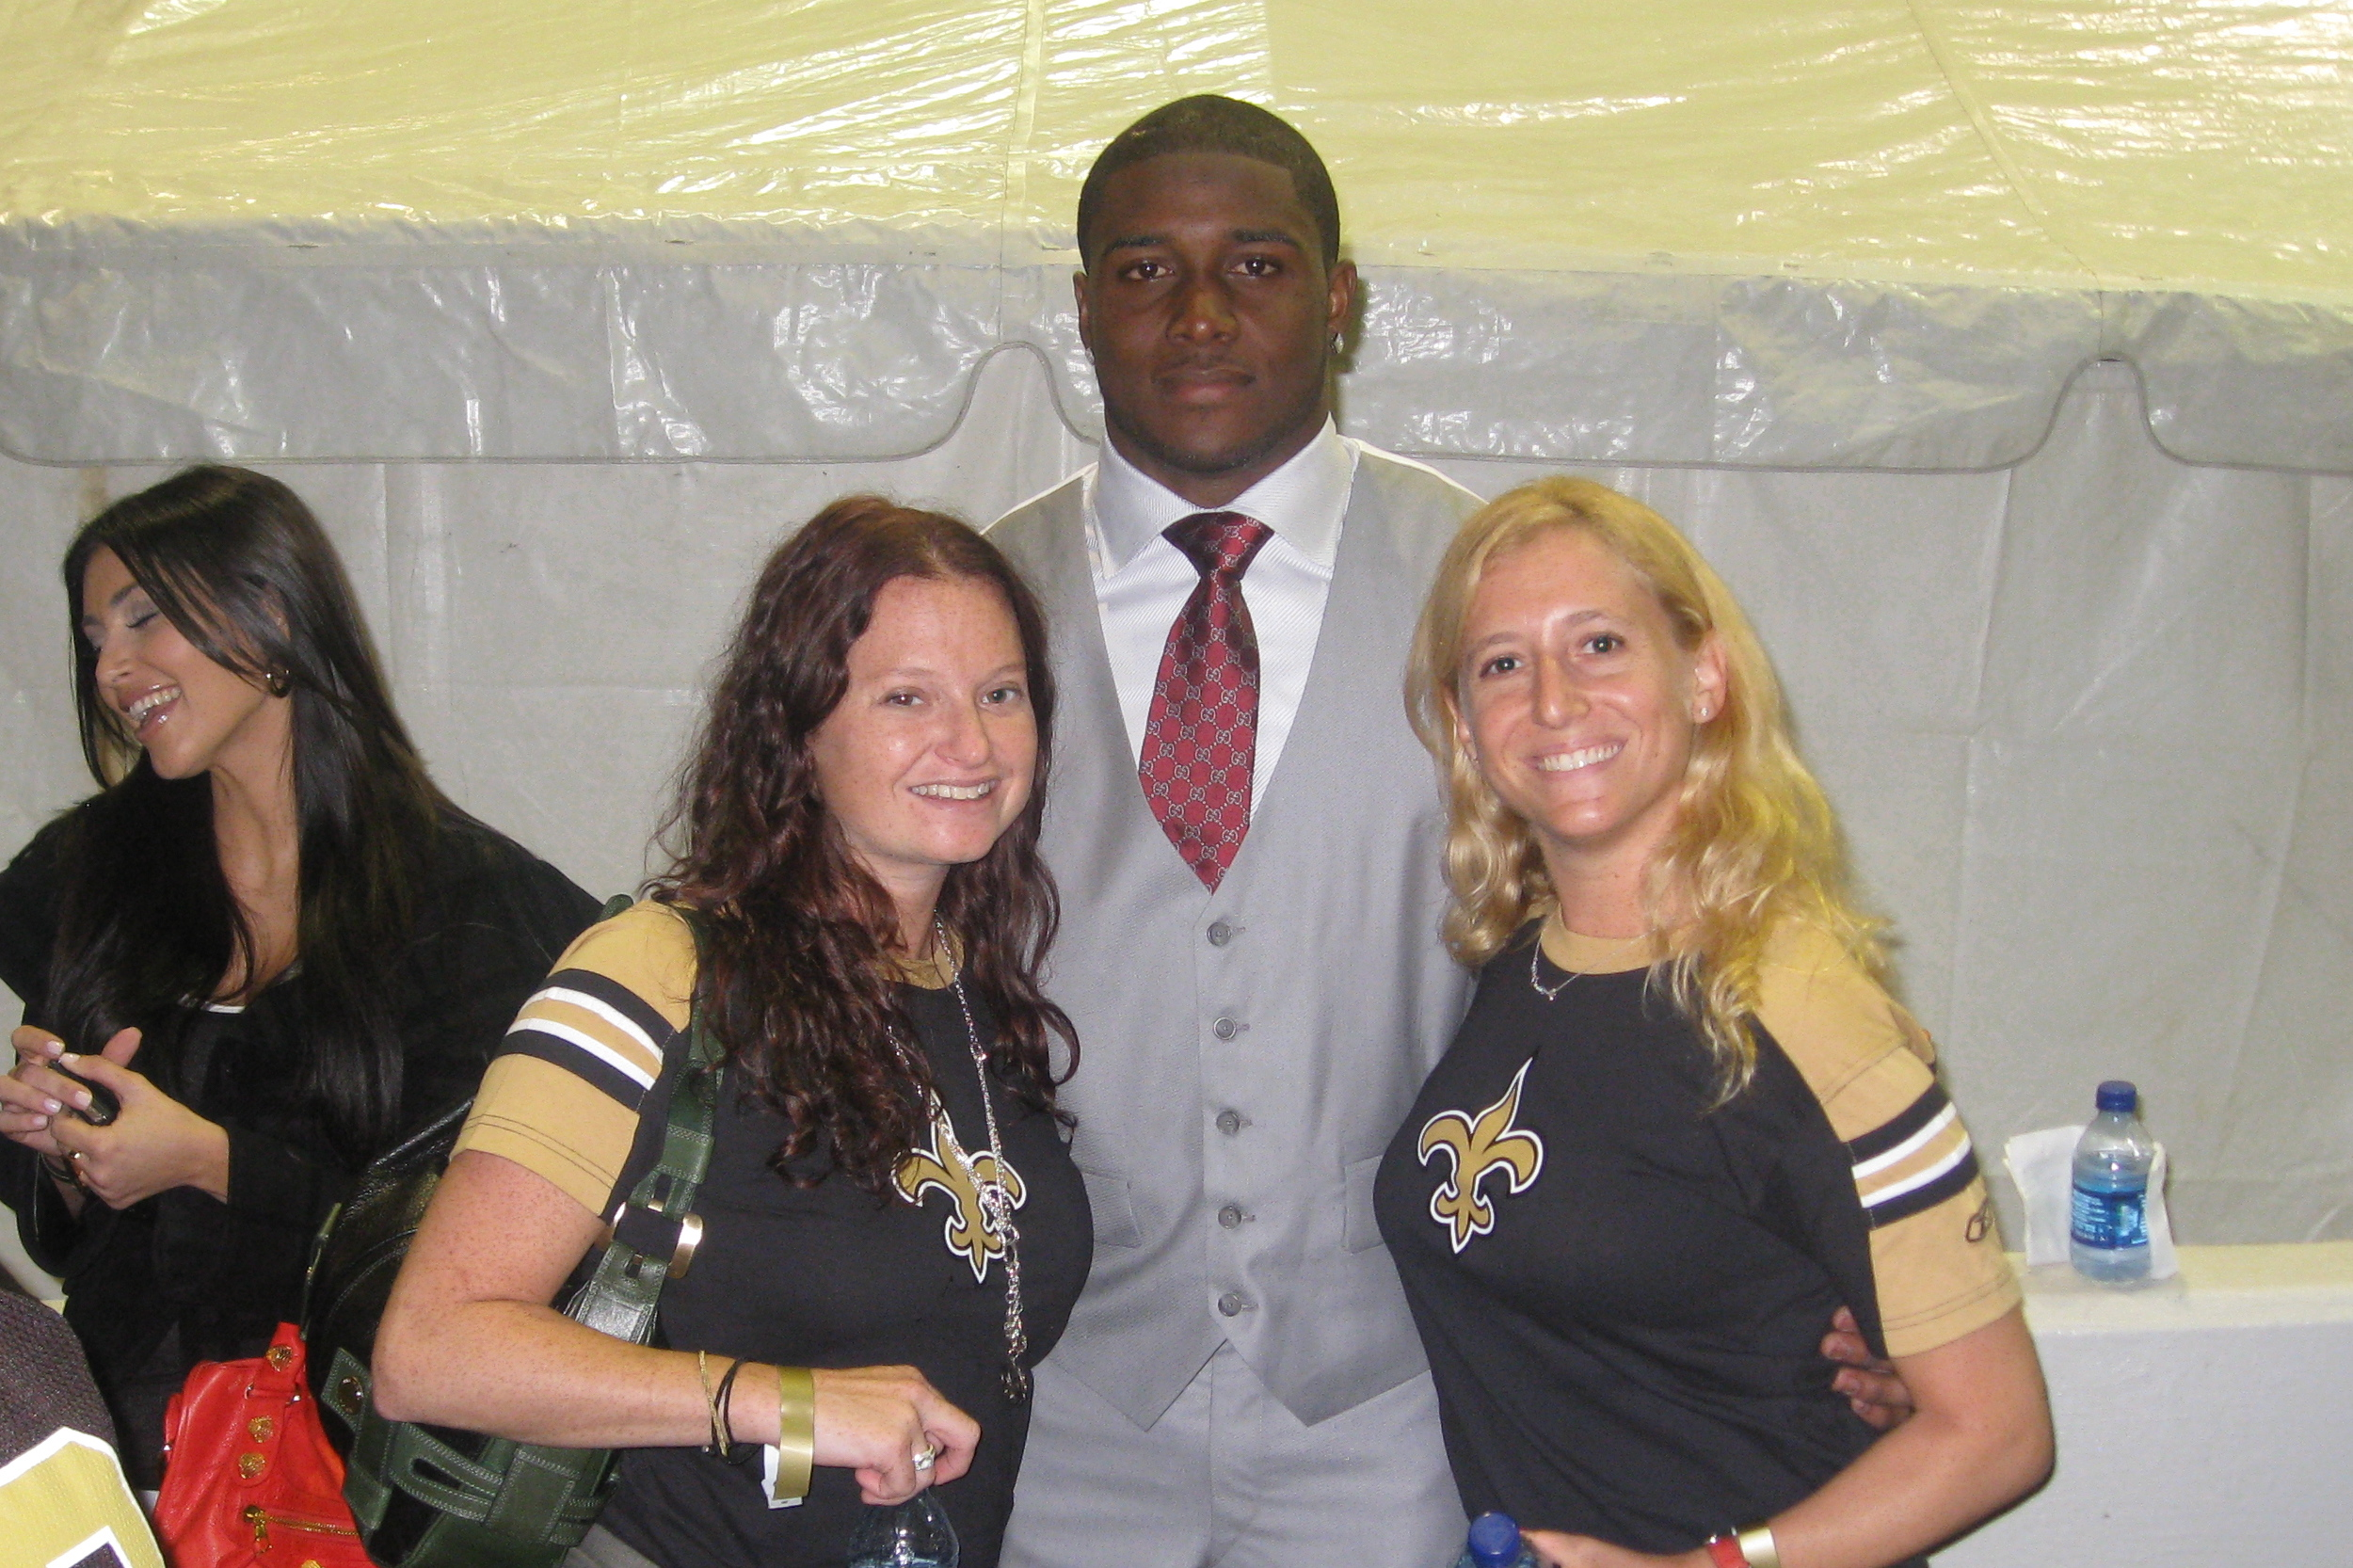 Bryna and Jordan steal a squeeze from Reggie Bush